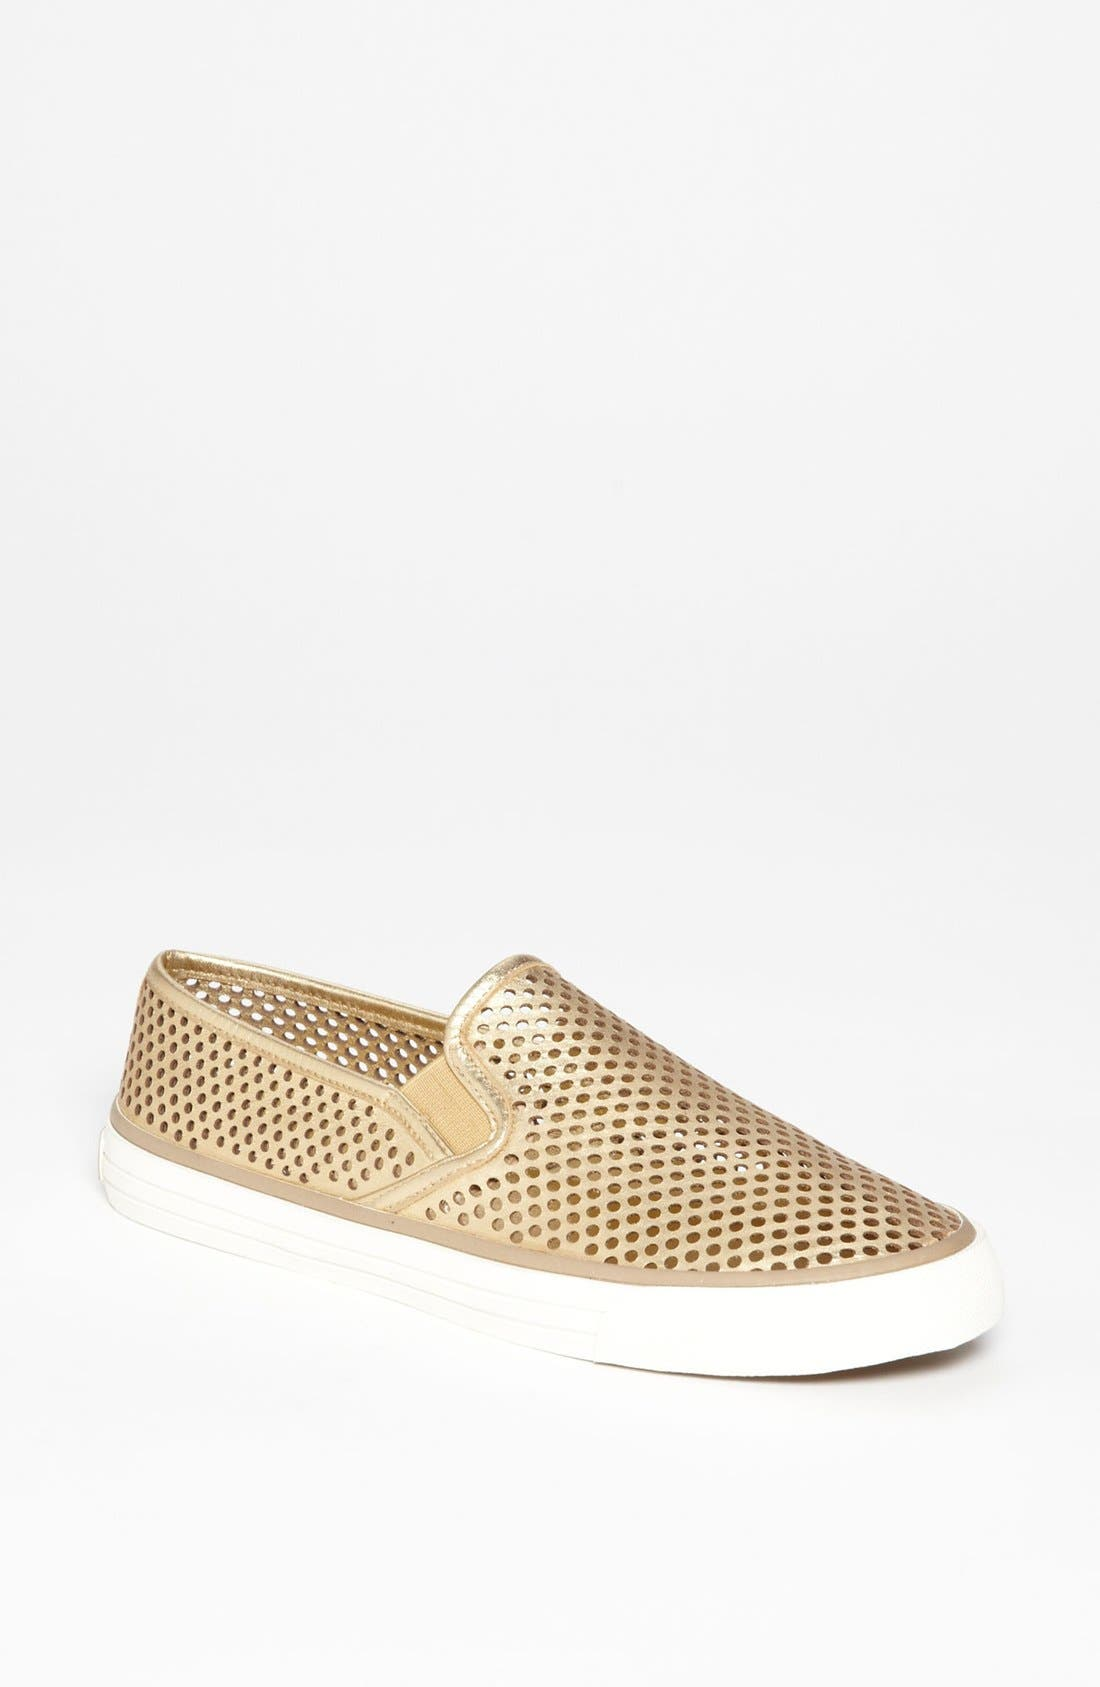 Main Image - Tory Burch 'Miles' Perforated Sneaker